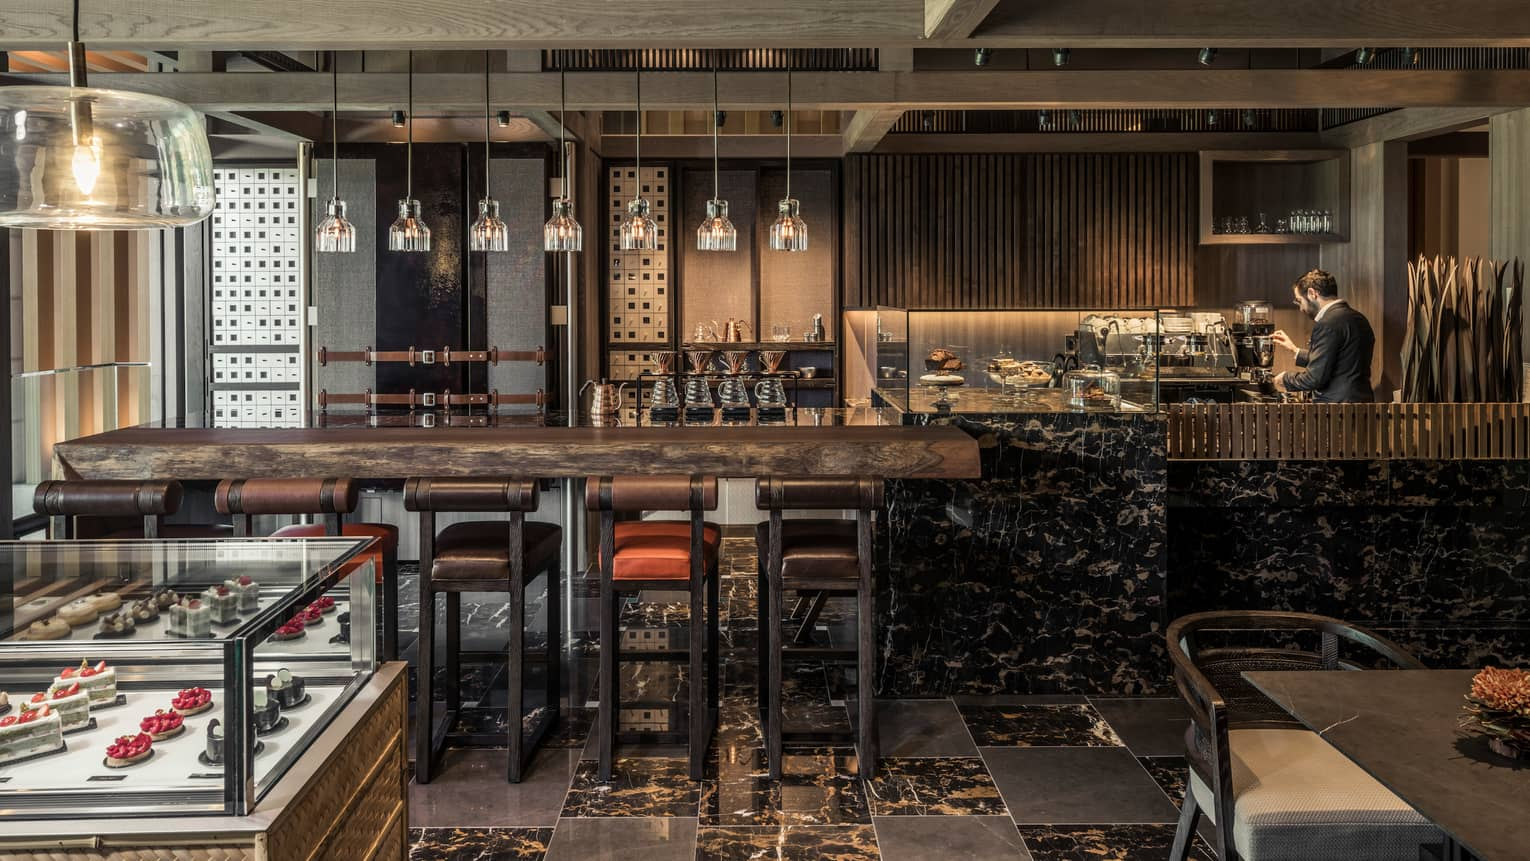 The Lounge rustic wood and black marble bar lined with leather stools, glass display with desserts